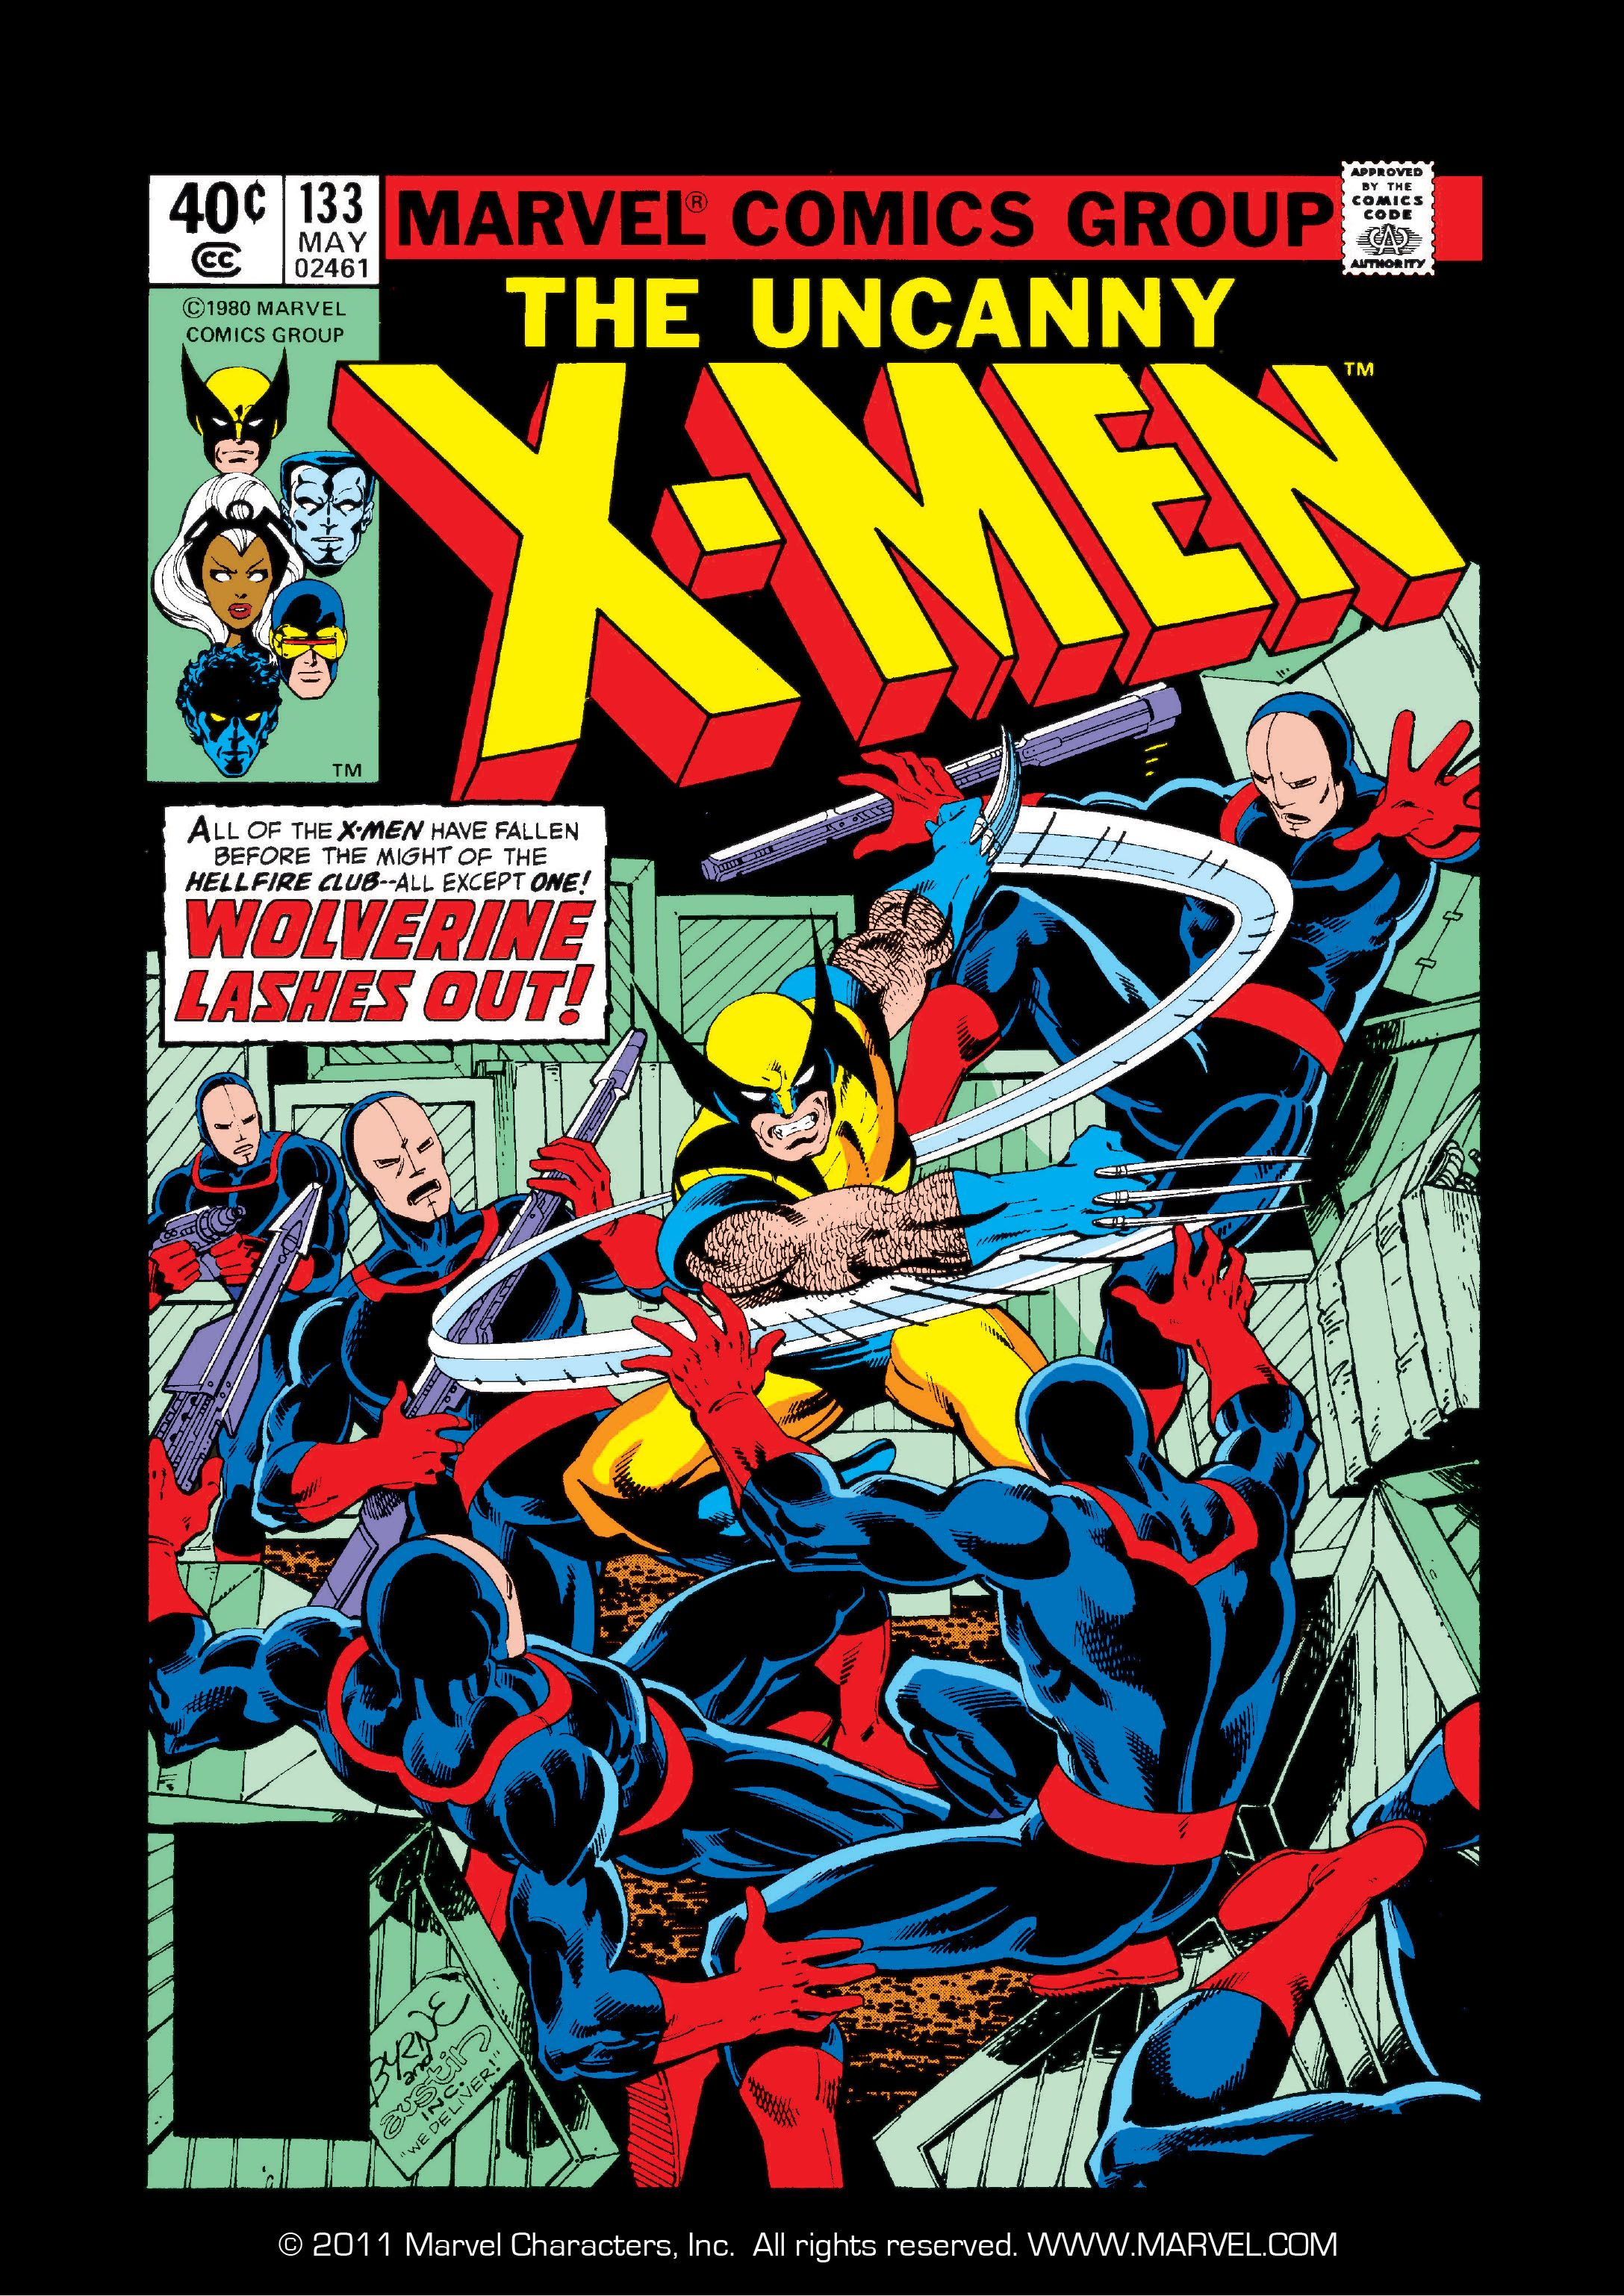 Uncanny X Men 1963 Issue 133 Read Uncanny X Men 1963 Issue 133 Comic Comic Book Covers Marvel Comics Covers Marvel Comic Books